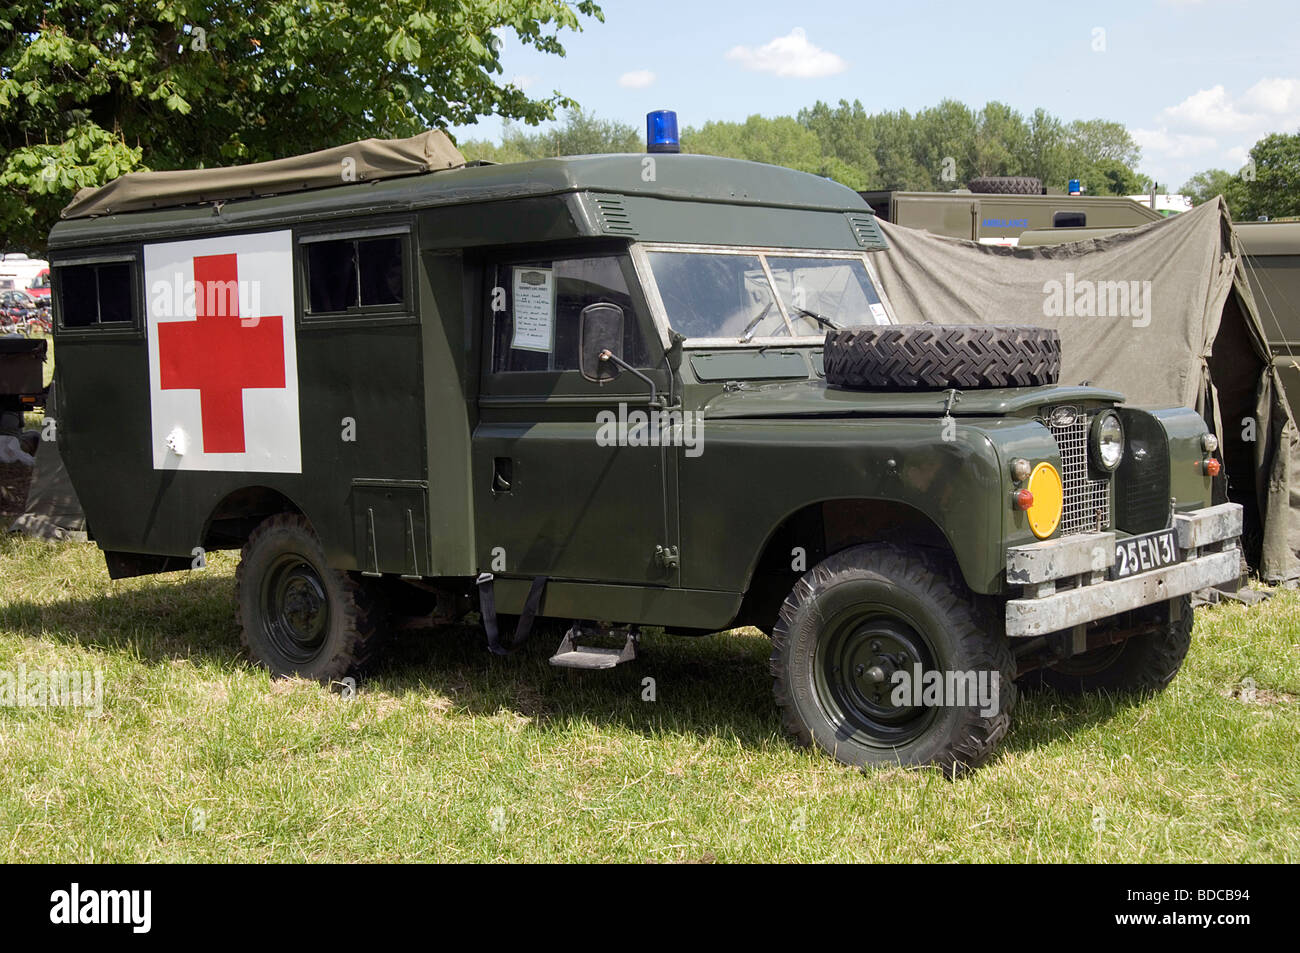 land rover first aid vehicle off road military drab green. Black Bedroom Furniture Sets. Home Design Ideas